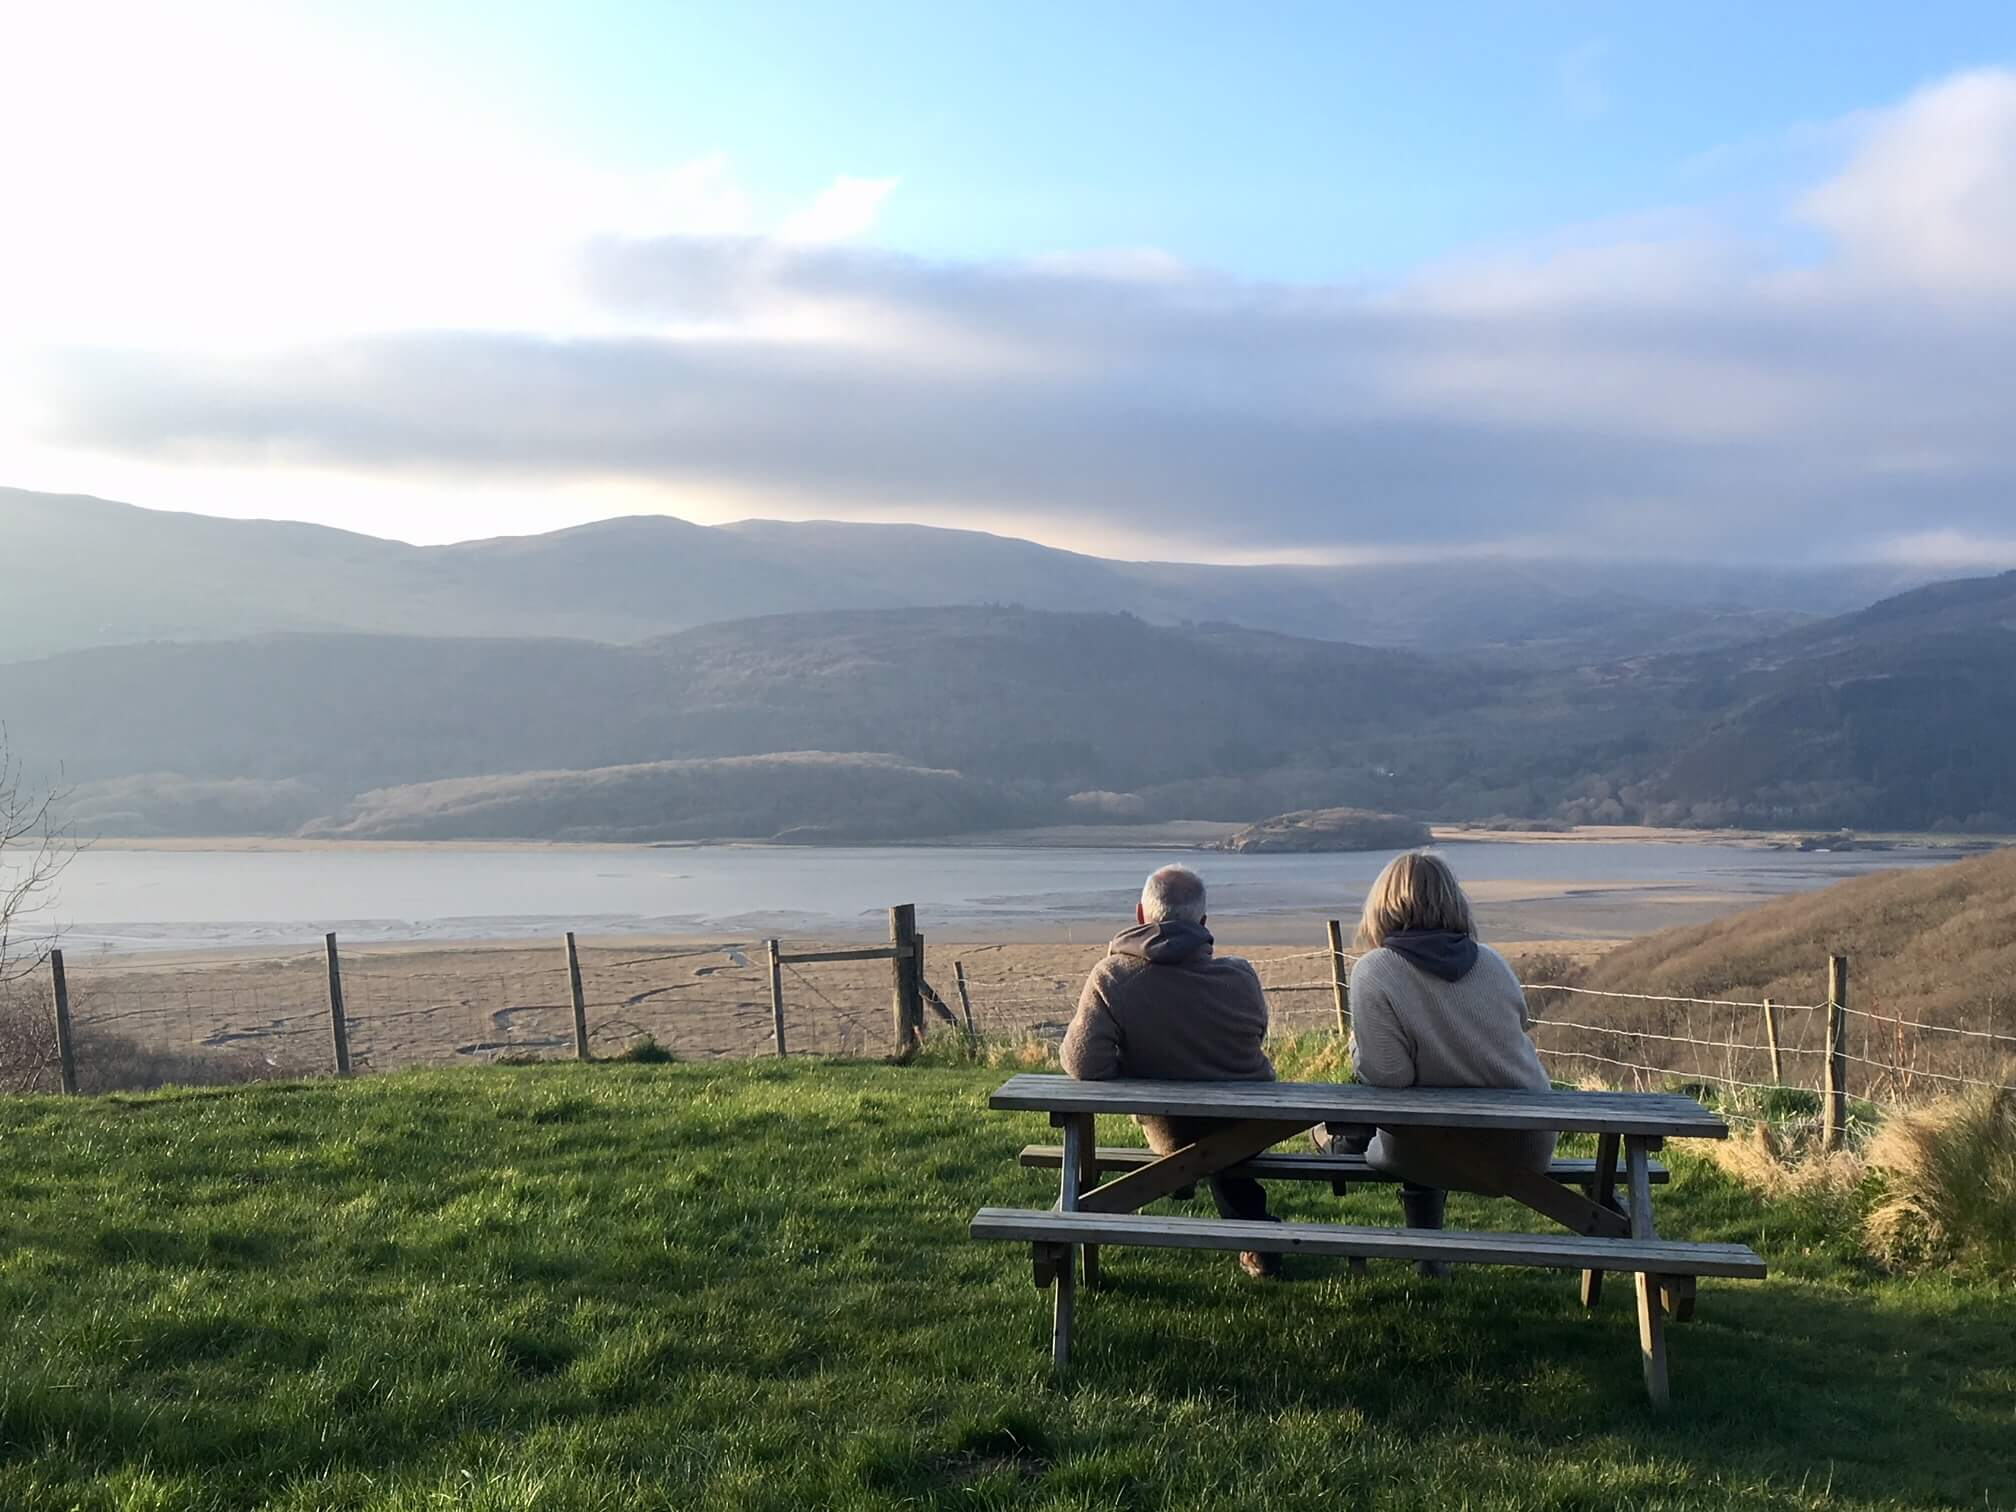 Relax and soak in the views at Graig Wen